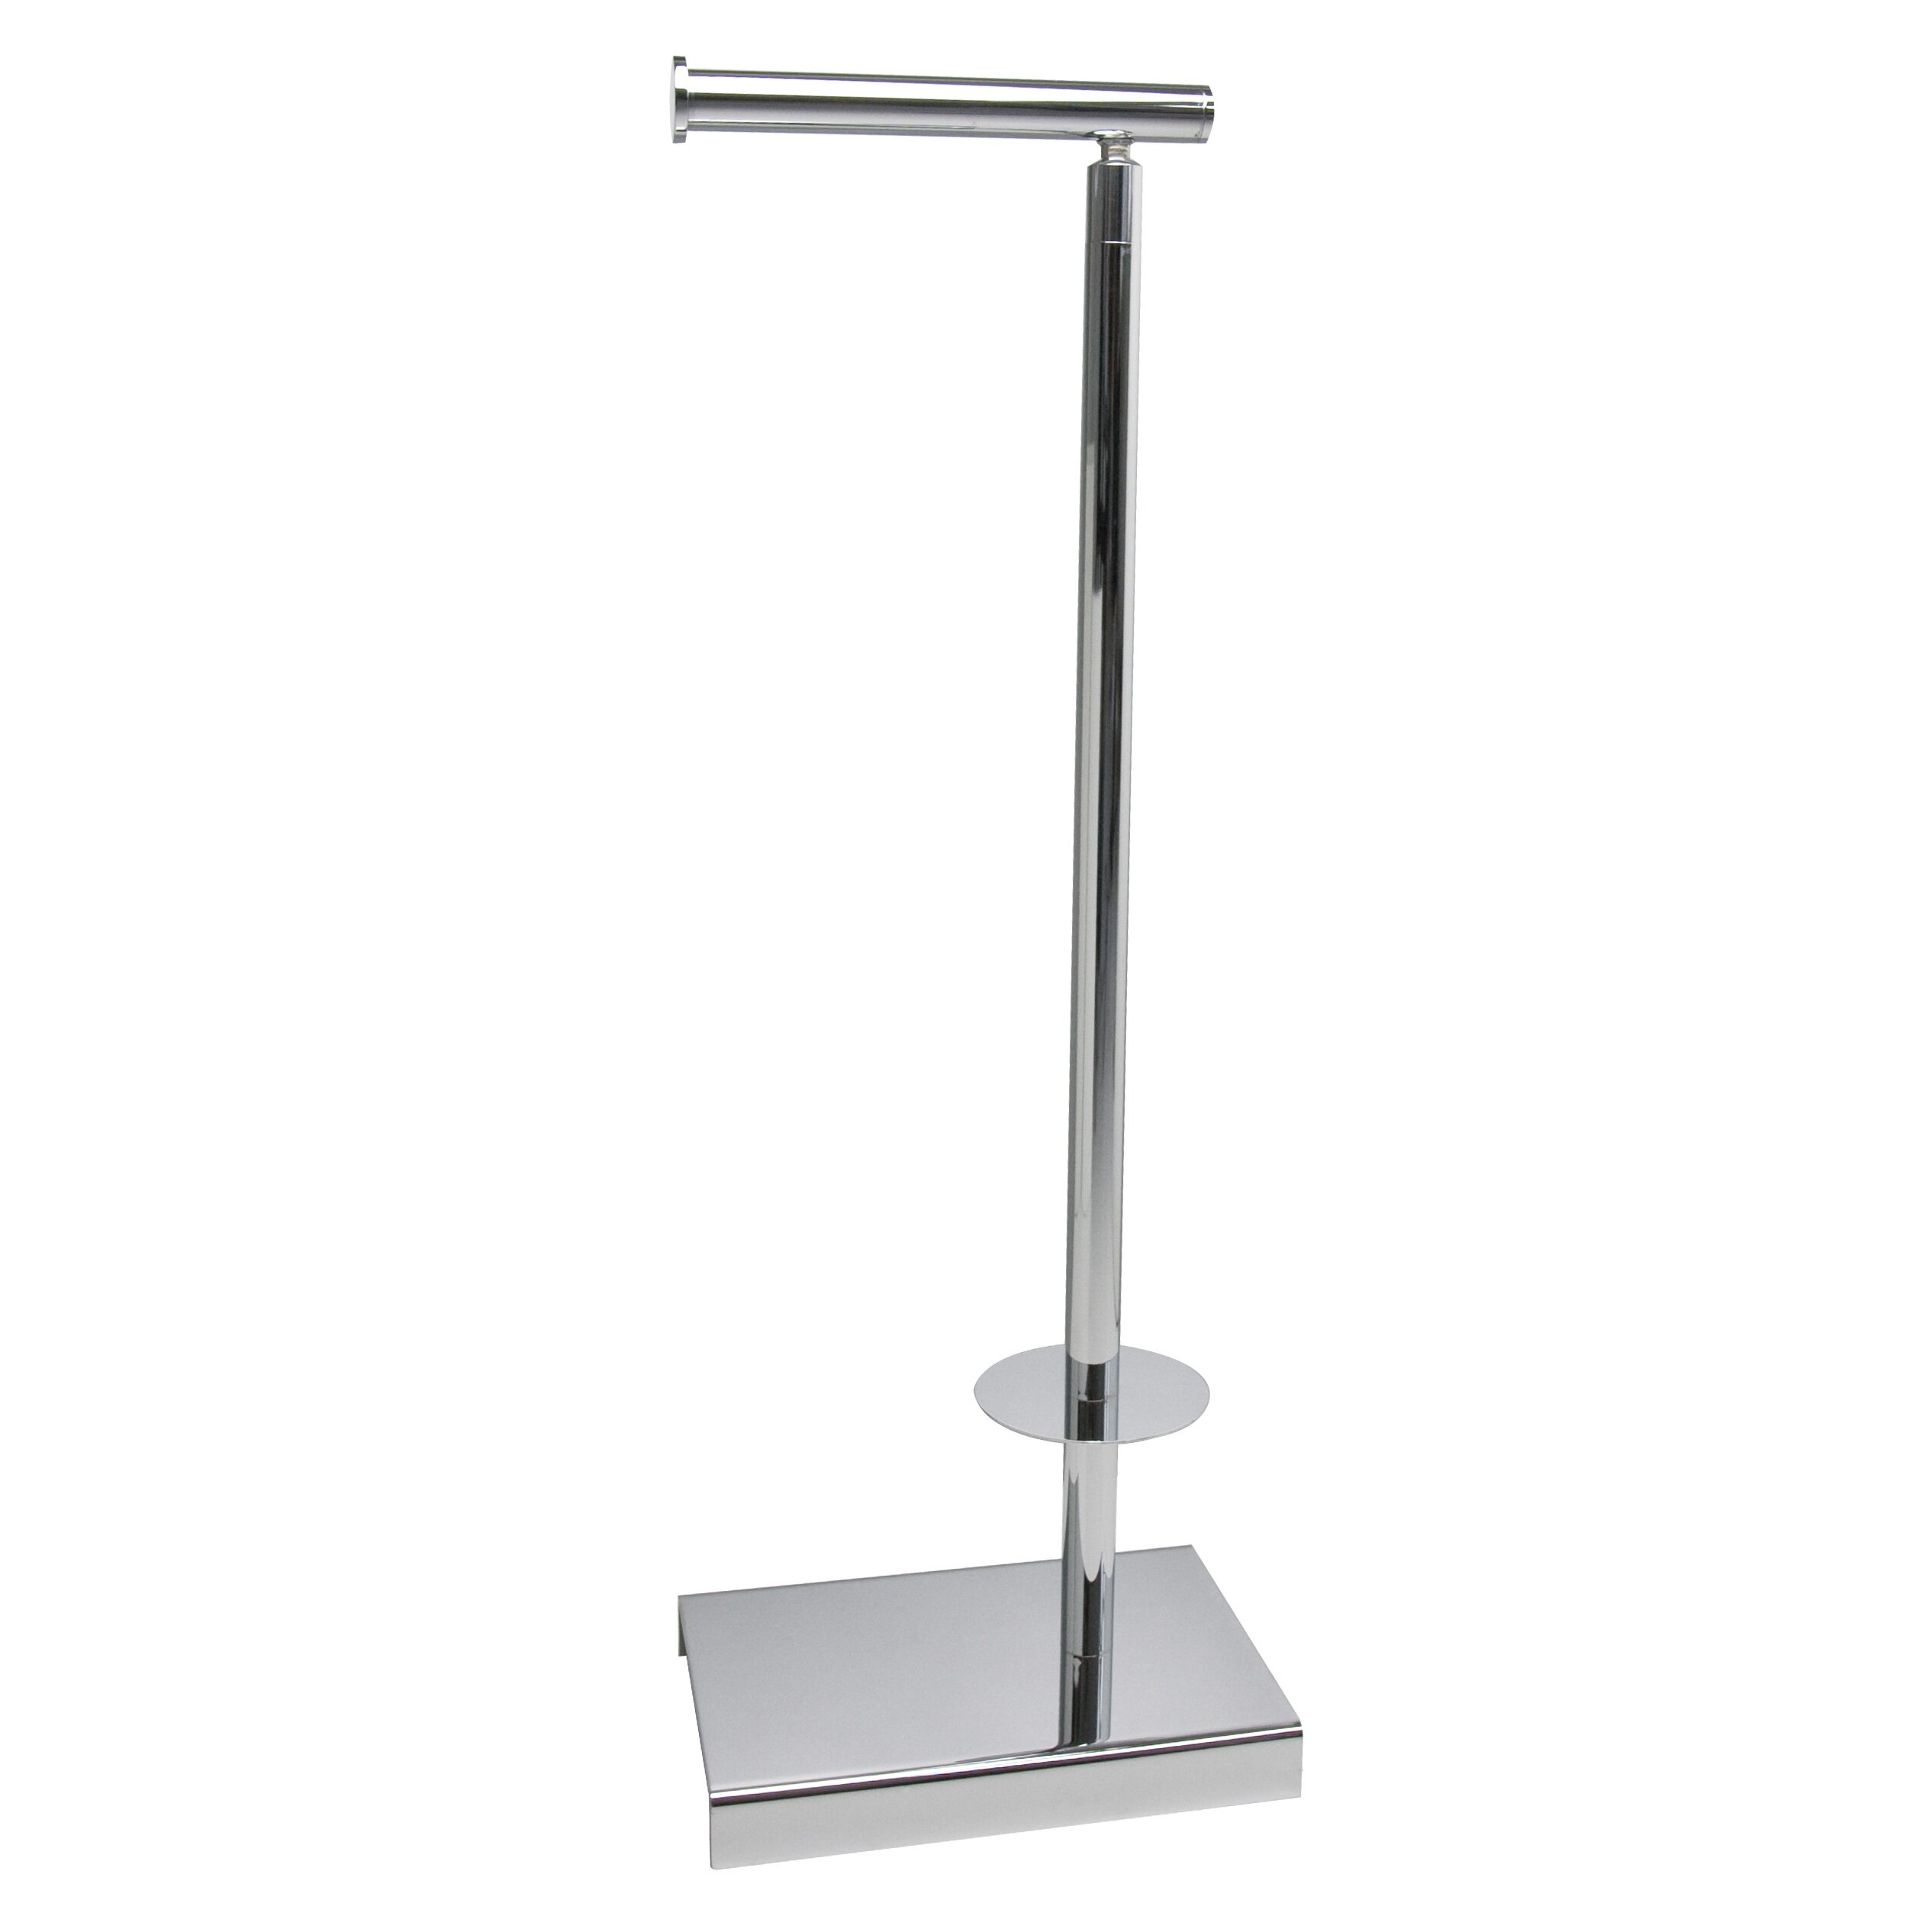 Valsan Classic Freestanding Spare Toilet Paper Holder Wayfair